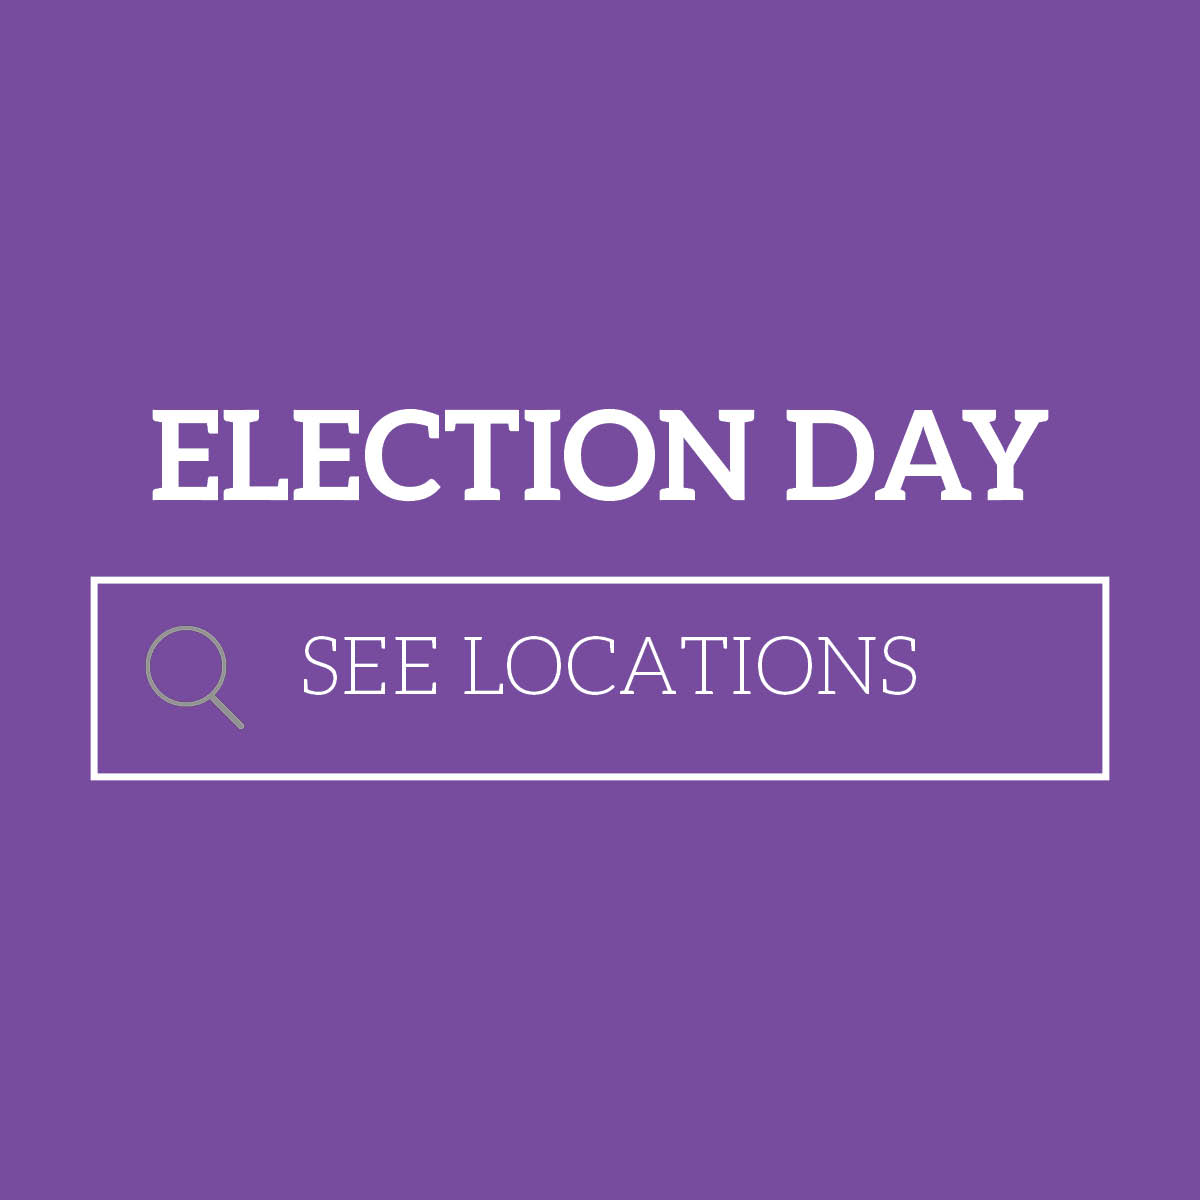 Election Day_SeeLocations_____.jpg